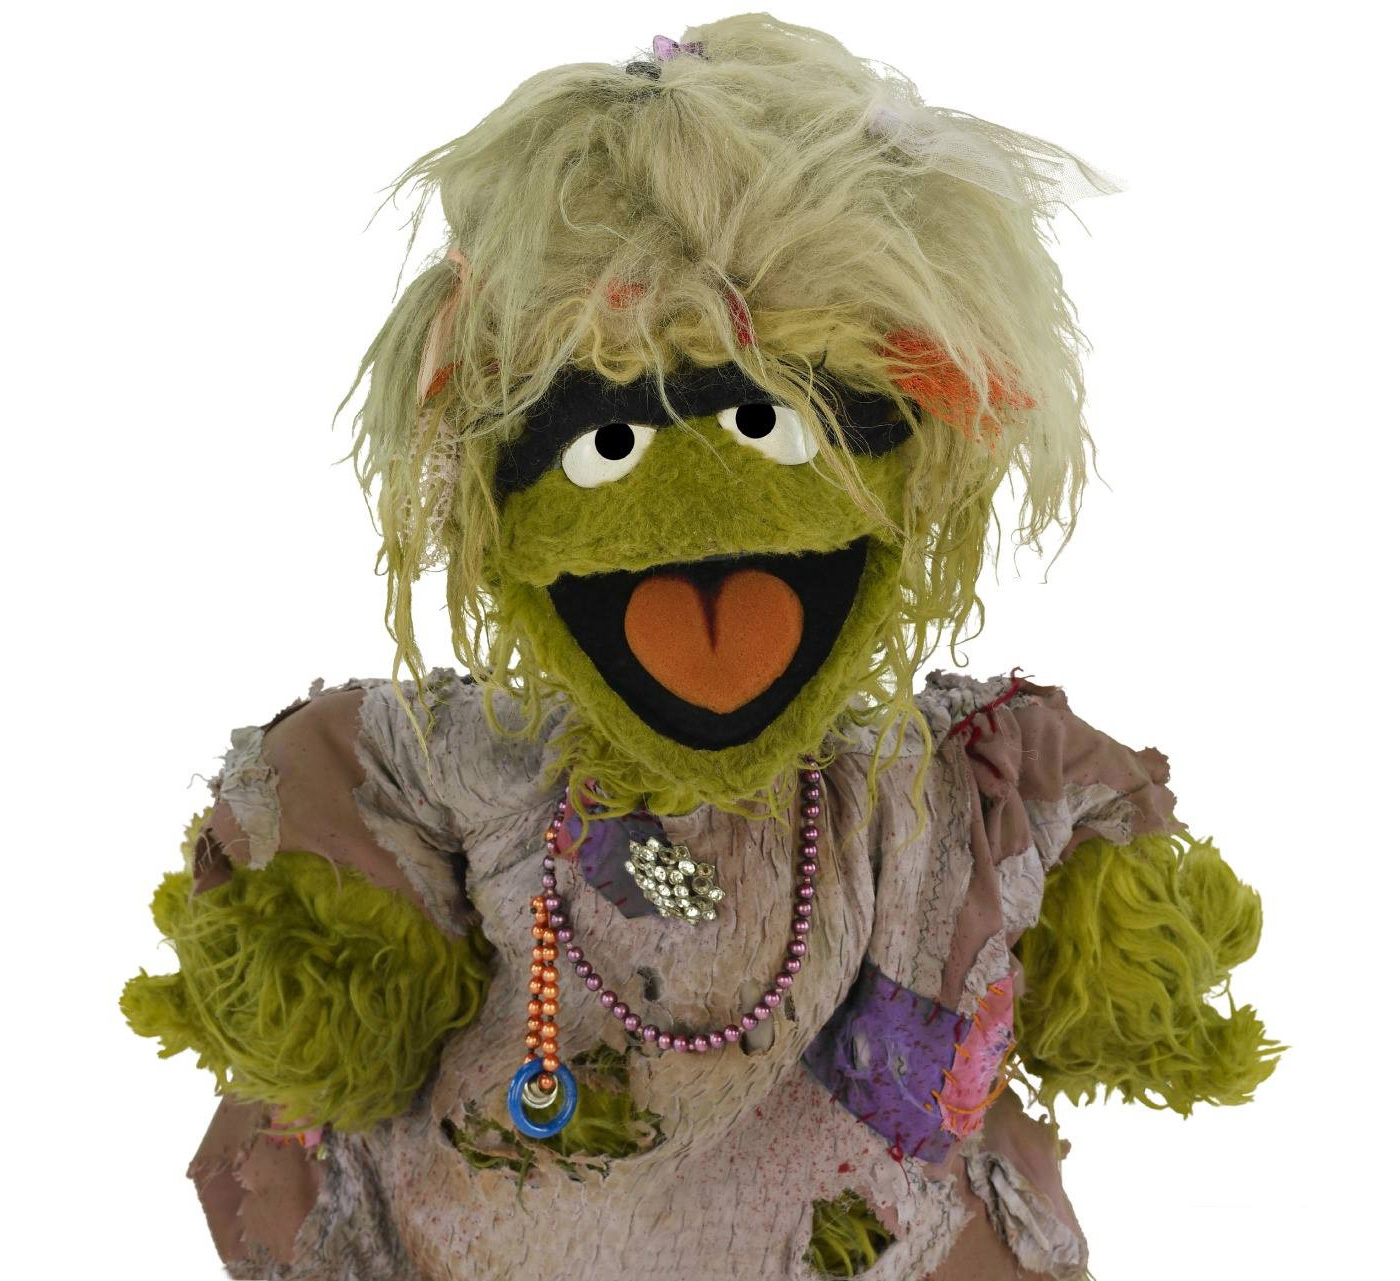 3a53052f4 Grundgetta | Muppet Wiki | FANDOM powered by Wikia